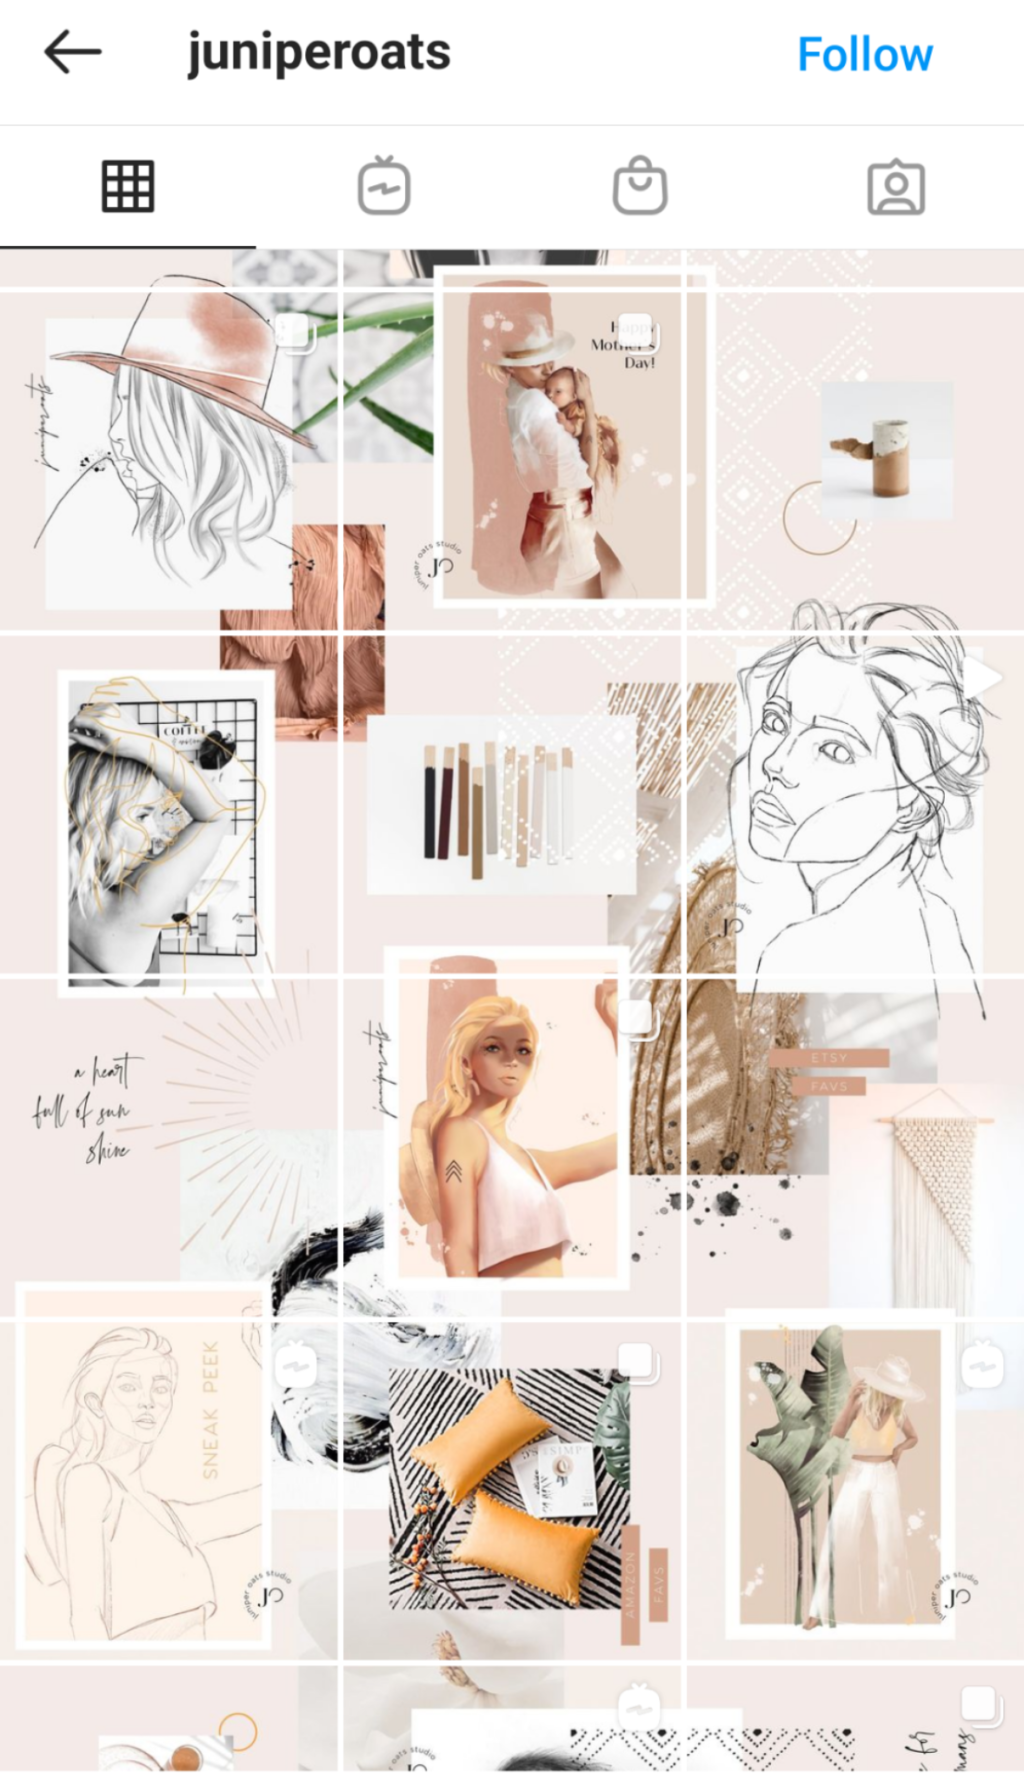 10 Creative Photo Grid Ideas for Instagram